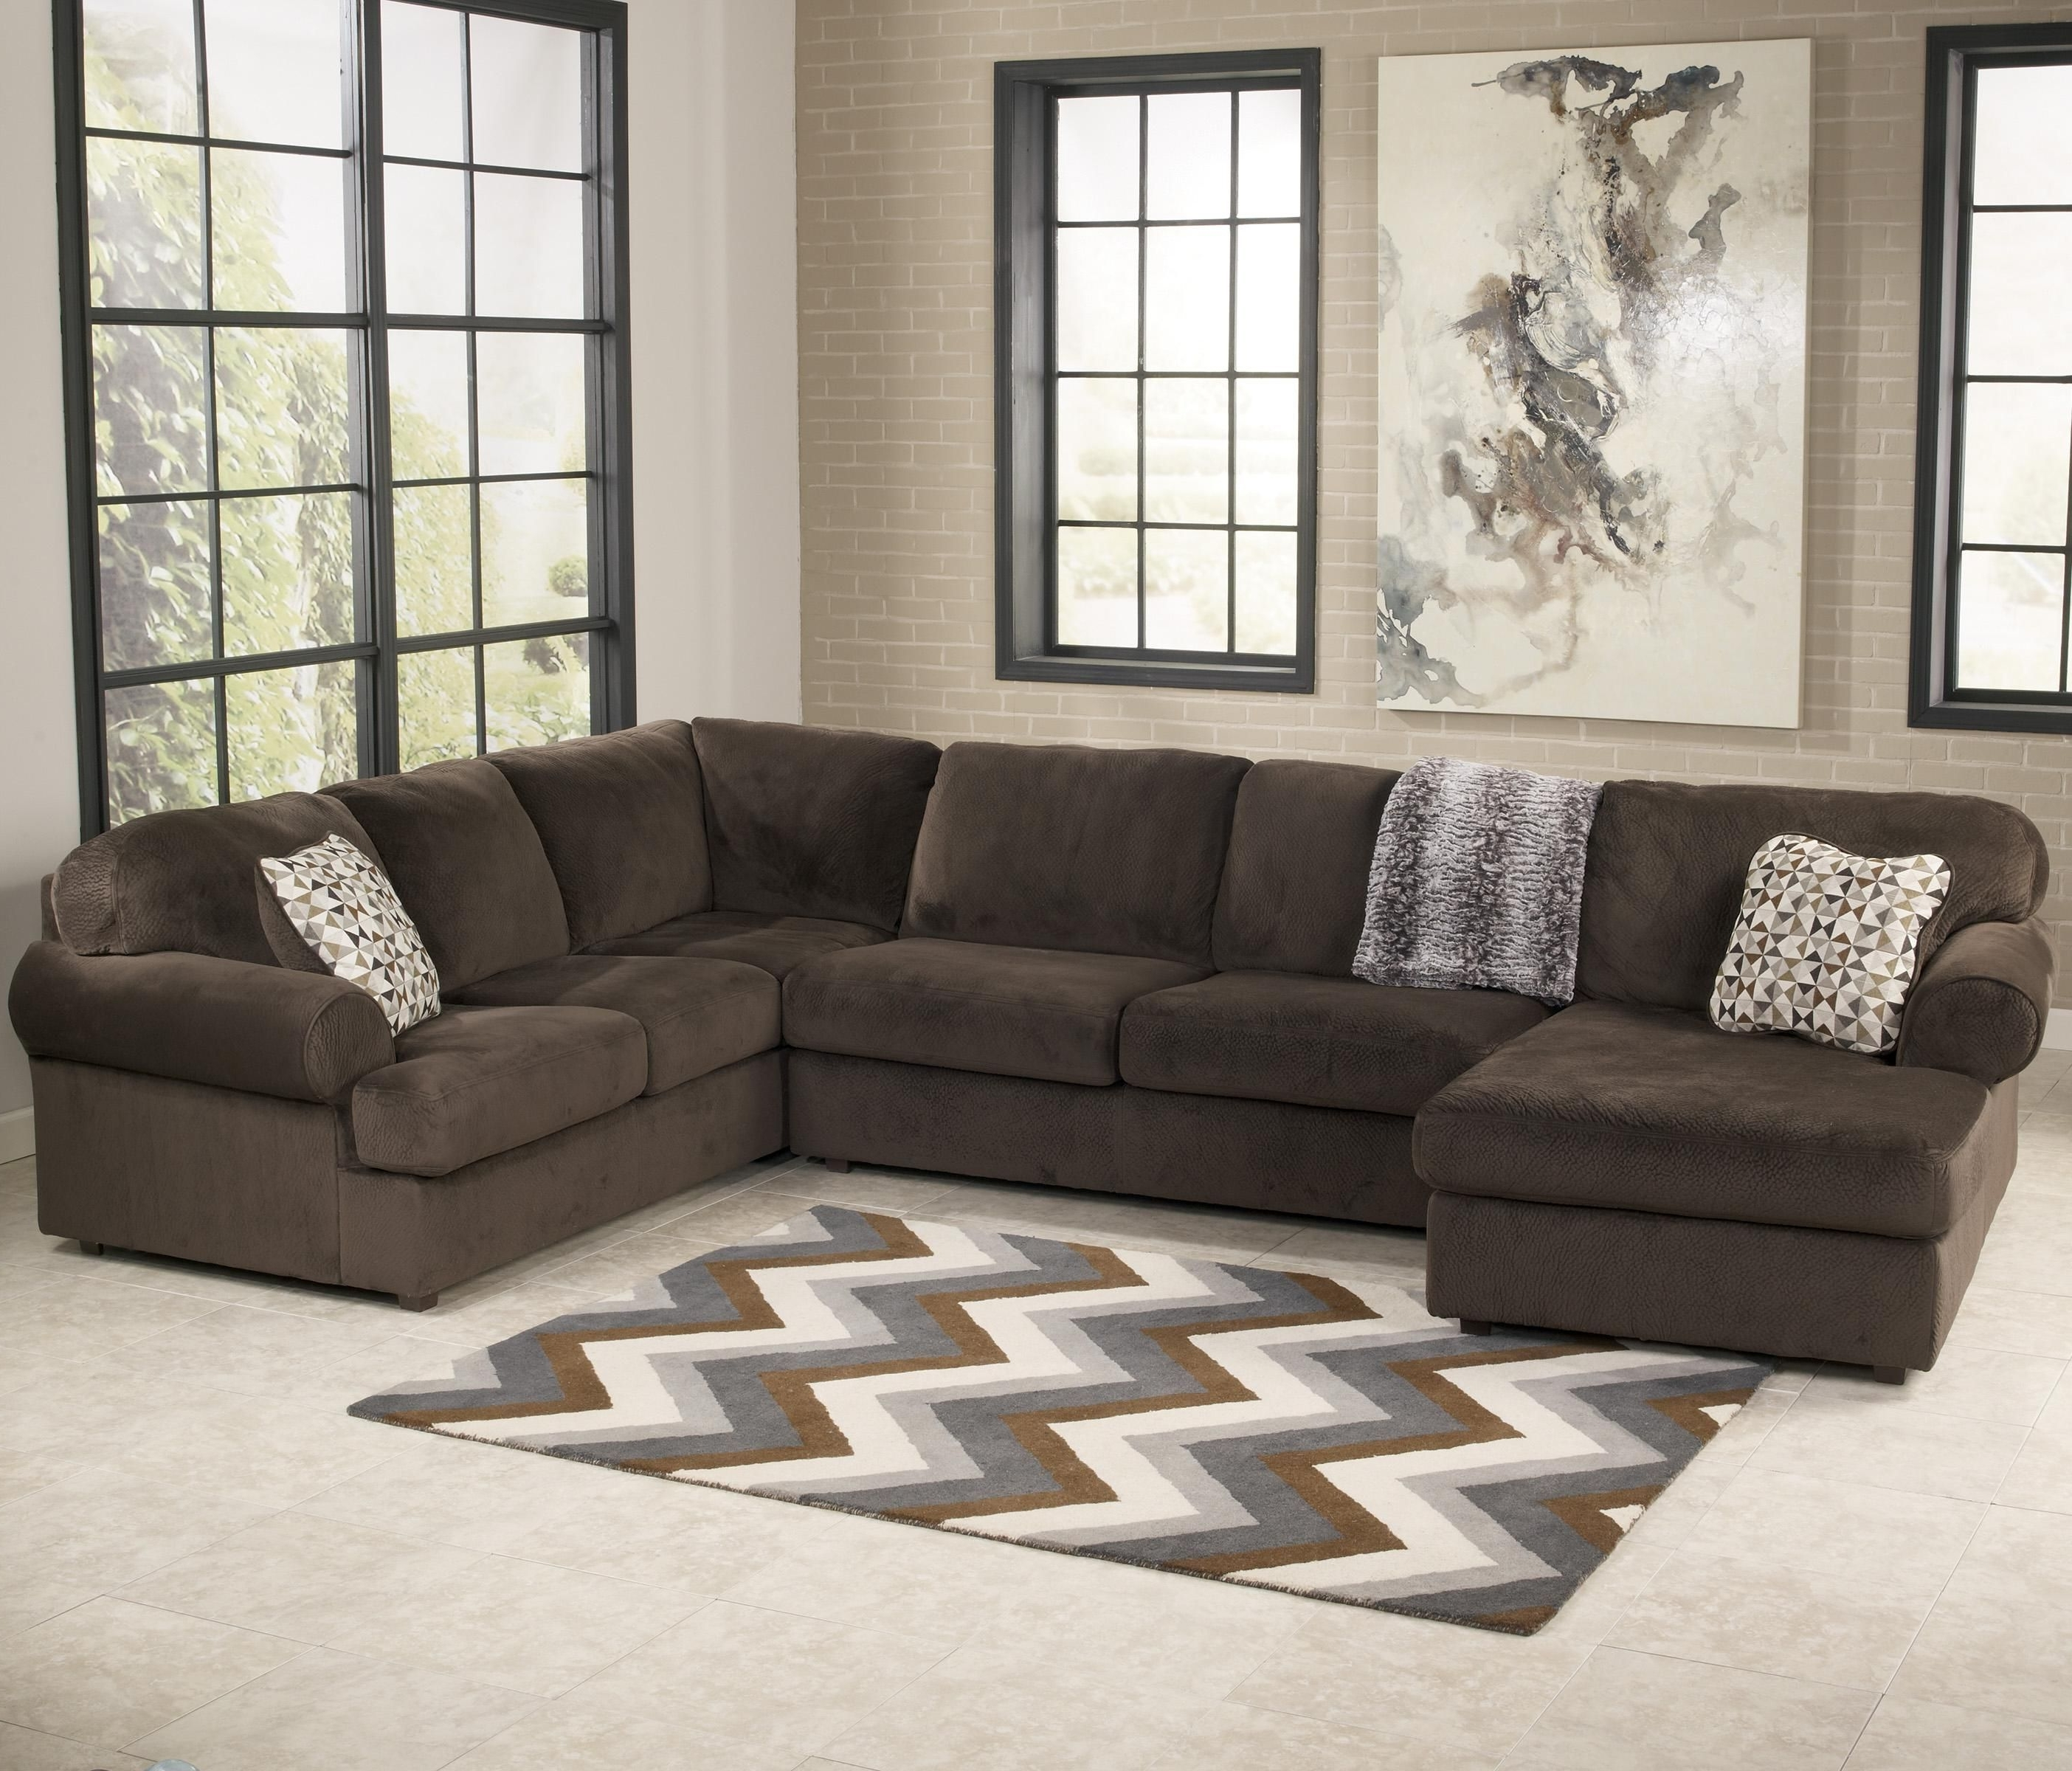 Jackson Ms Sectional Sofas Throughout Trendy Jessa Place – Chocolate Casual Sectional Sofa With Left Chaise (Gallery 7 of 15)